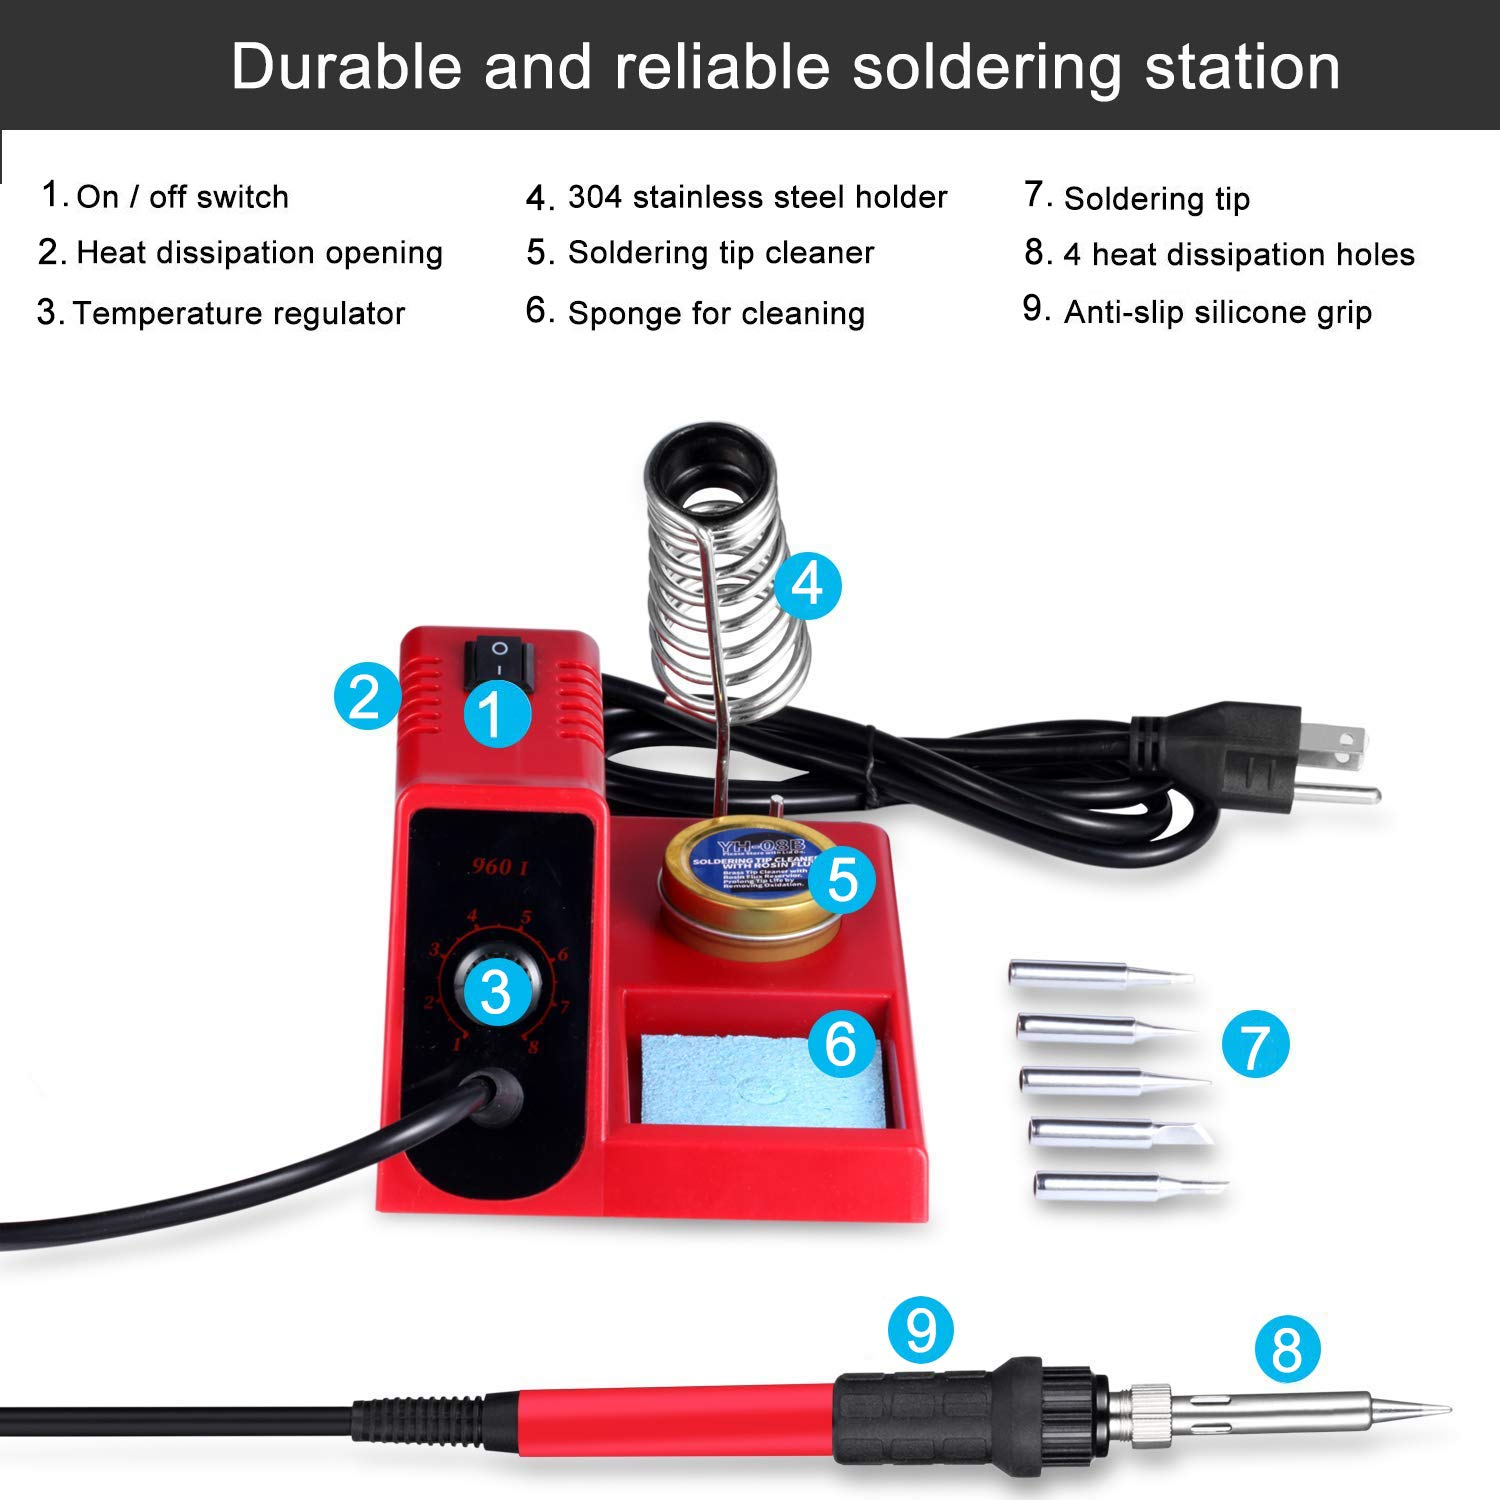 60W Soldering Iron Station, 8 Level Adjust Temperature Control, Ergonomic Soldering Iron, Solder Holder, 5 pcs Different Tips and Brass Tip Cleaner (960D) by TFLY (Image #4)